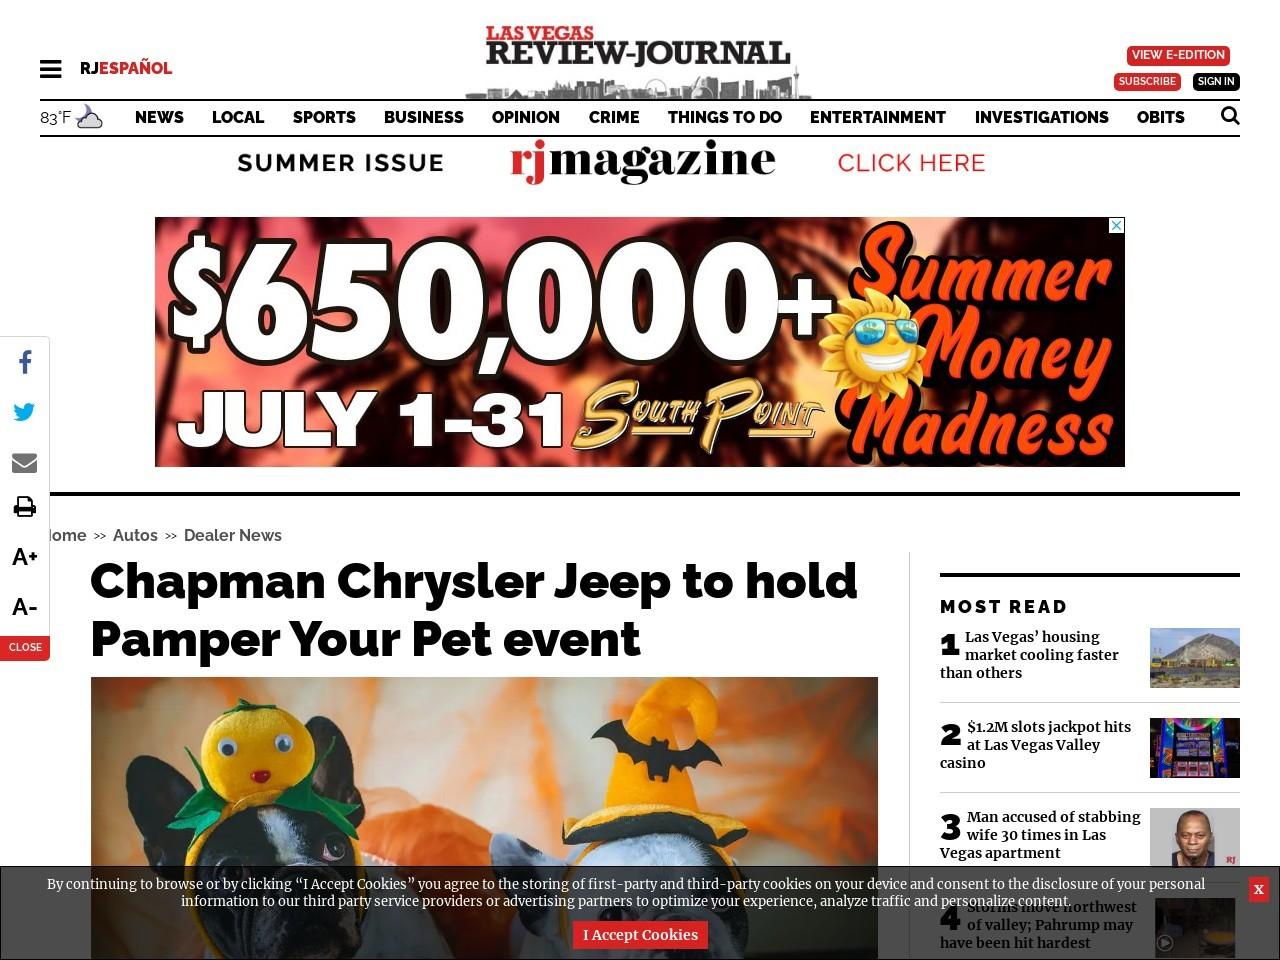 Chapman Chrysler Jeep to hold Pamper Your Pet event